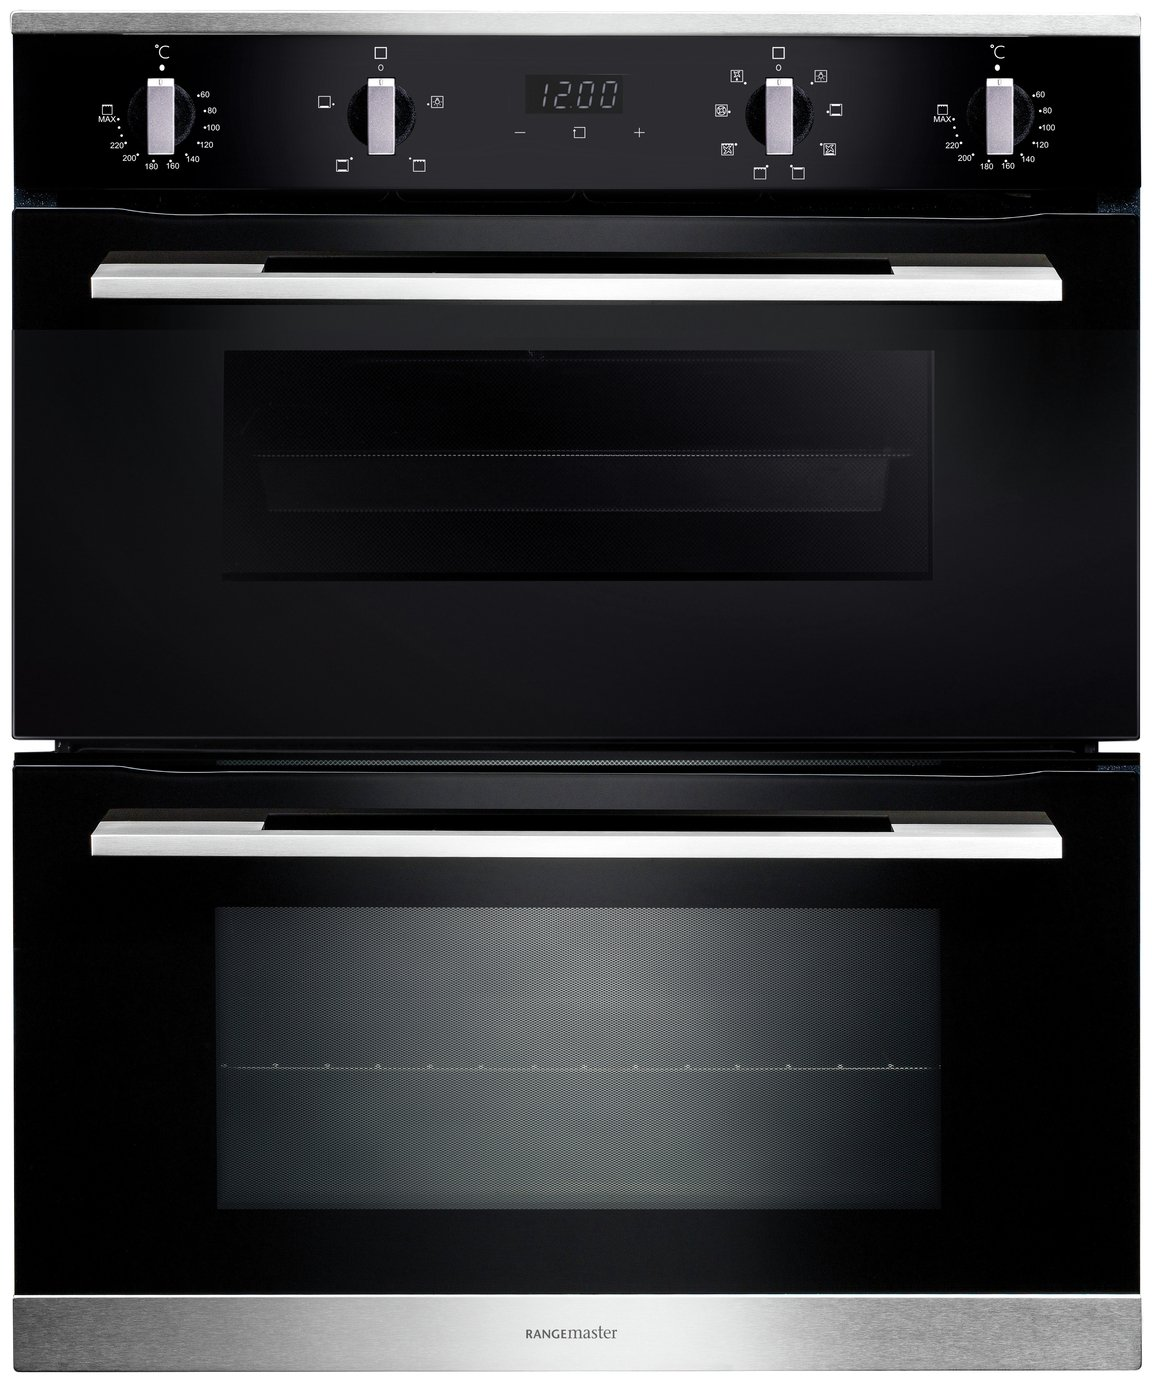 Rangemaster RMB7248BL/SS Built Under Double Electric  Oven